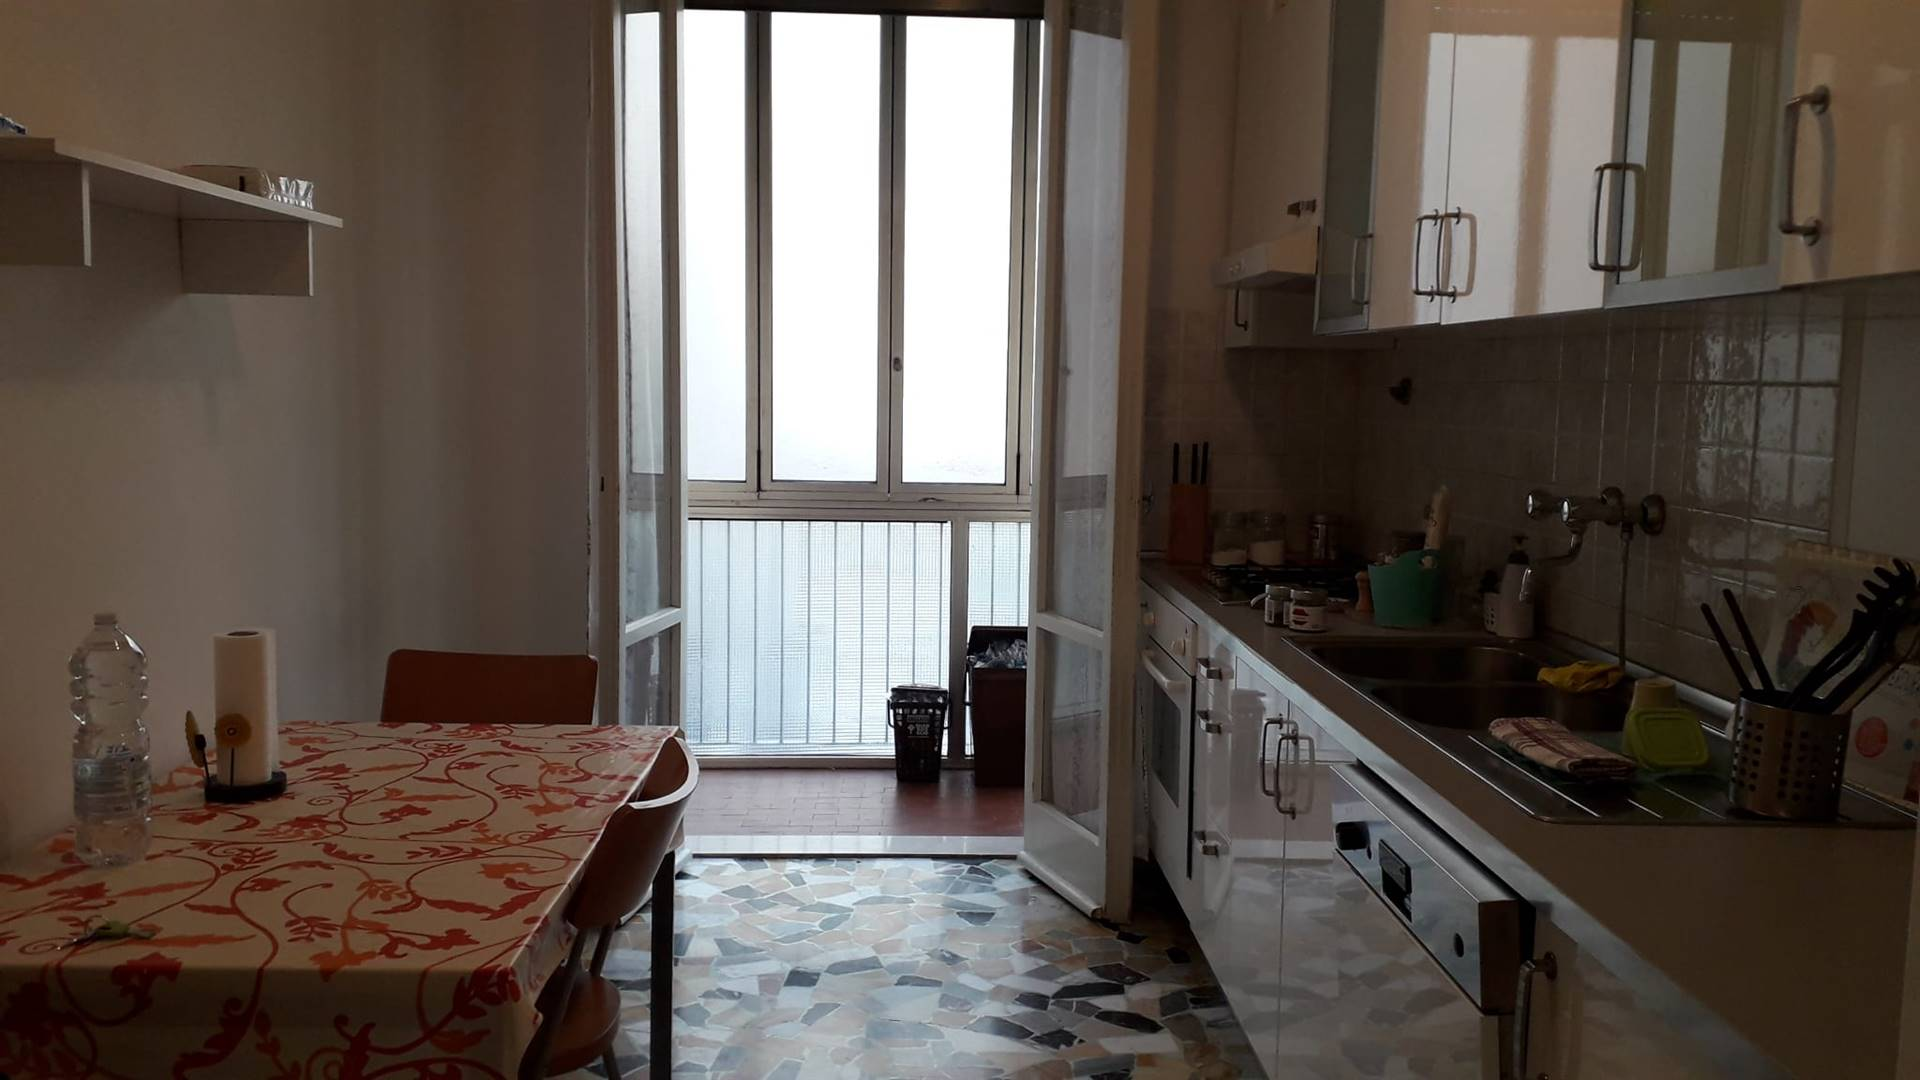 SAN IACOPINO, FIRENZE, Apartment for sale of 71 Sq. mt., Habitable, Heating Centralized, Energetic class: G, Epi: 217 kwh/m2 year, placed at Ground,